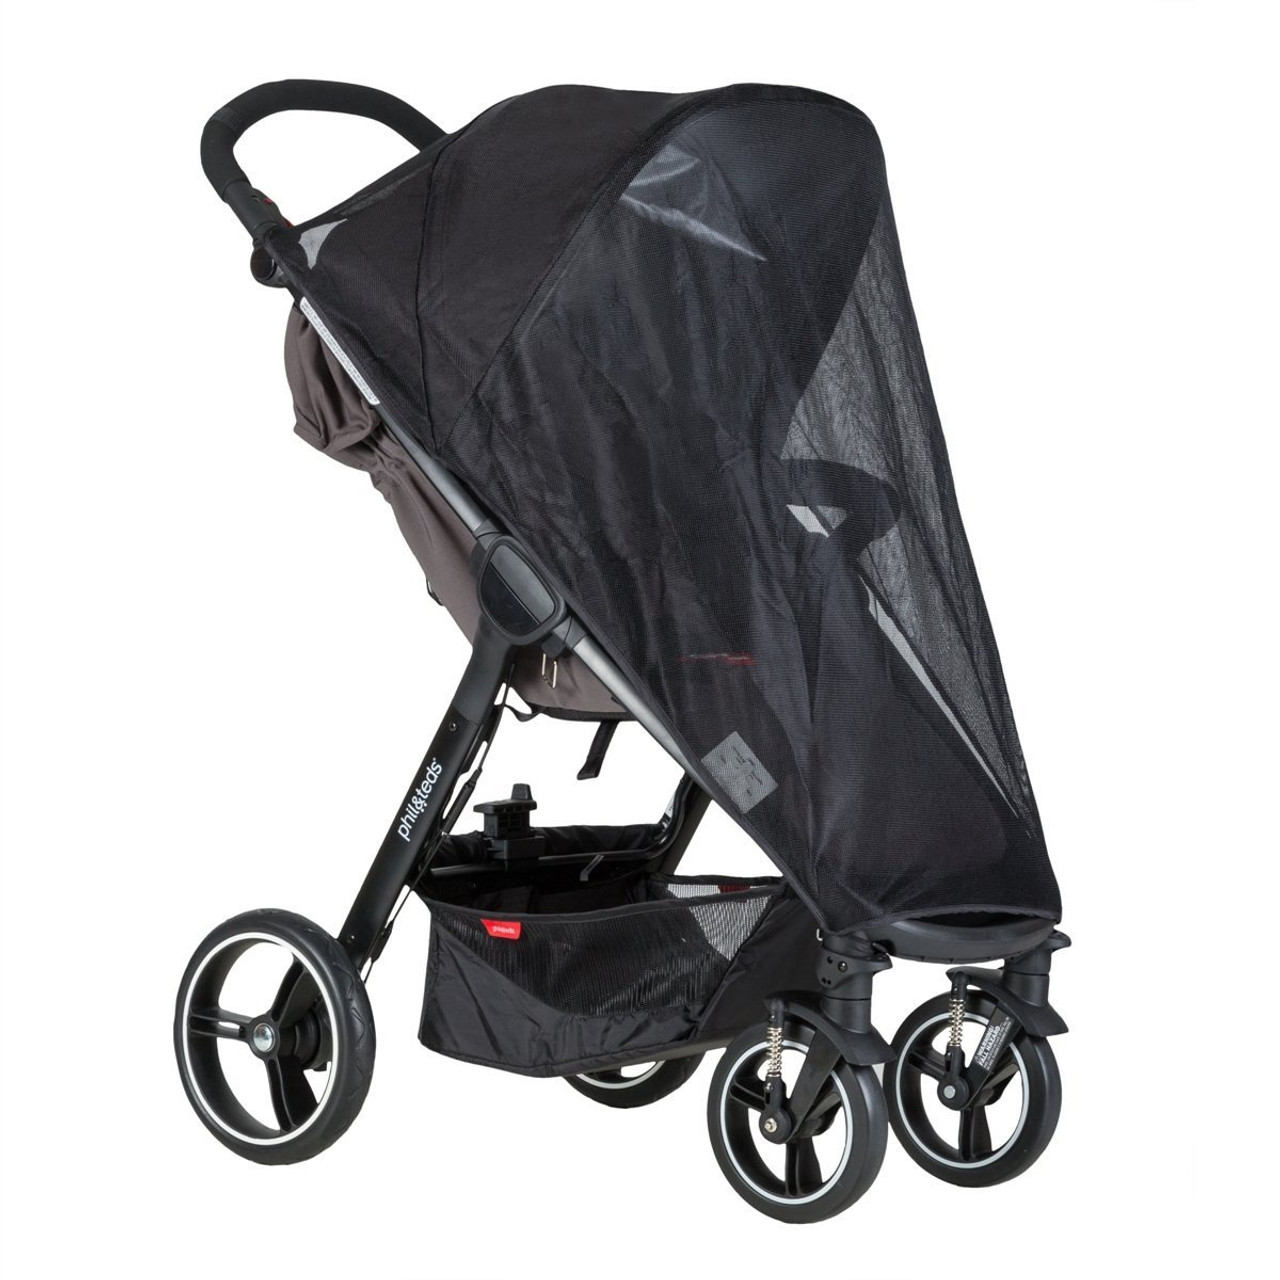 Phil & Teds Smart Single Sun Cover 2016 at Baby Barn Discounts Phil & Teds Smart pram accessories custom fit sun mesh cover for Smart buggy.